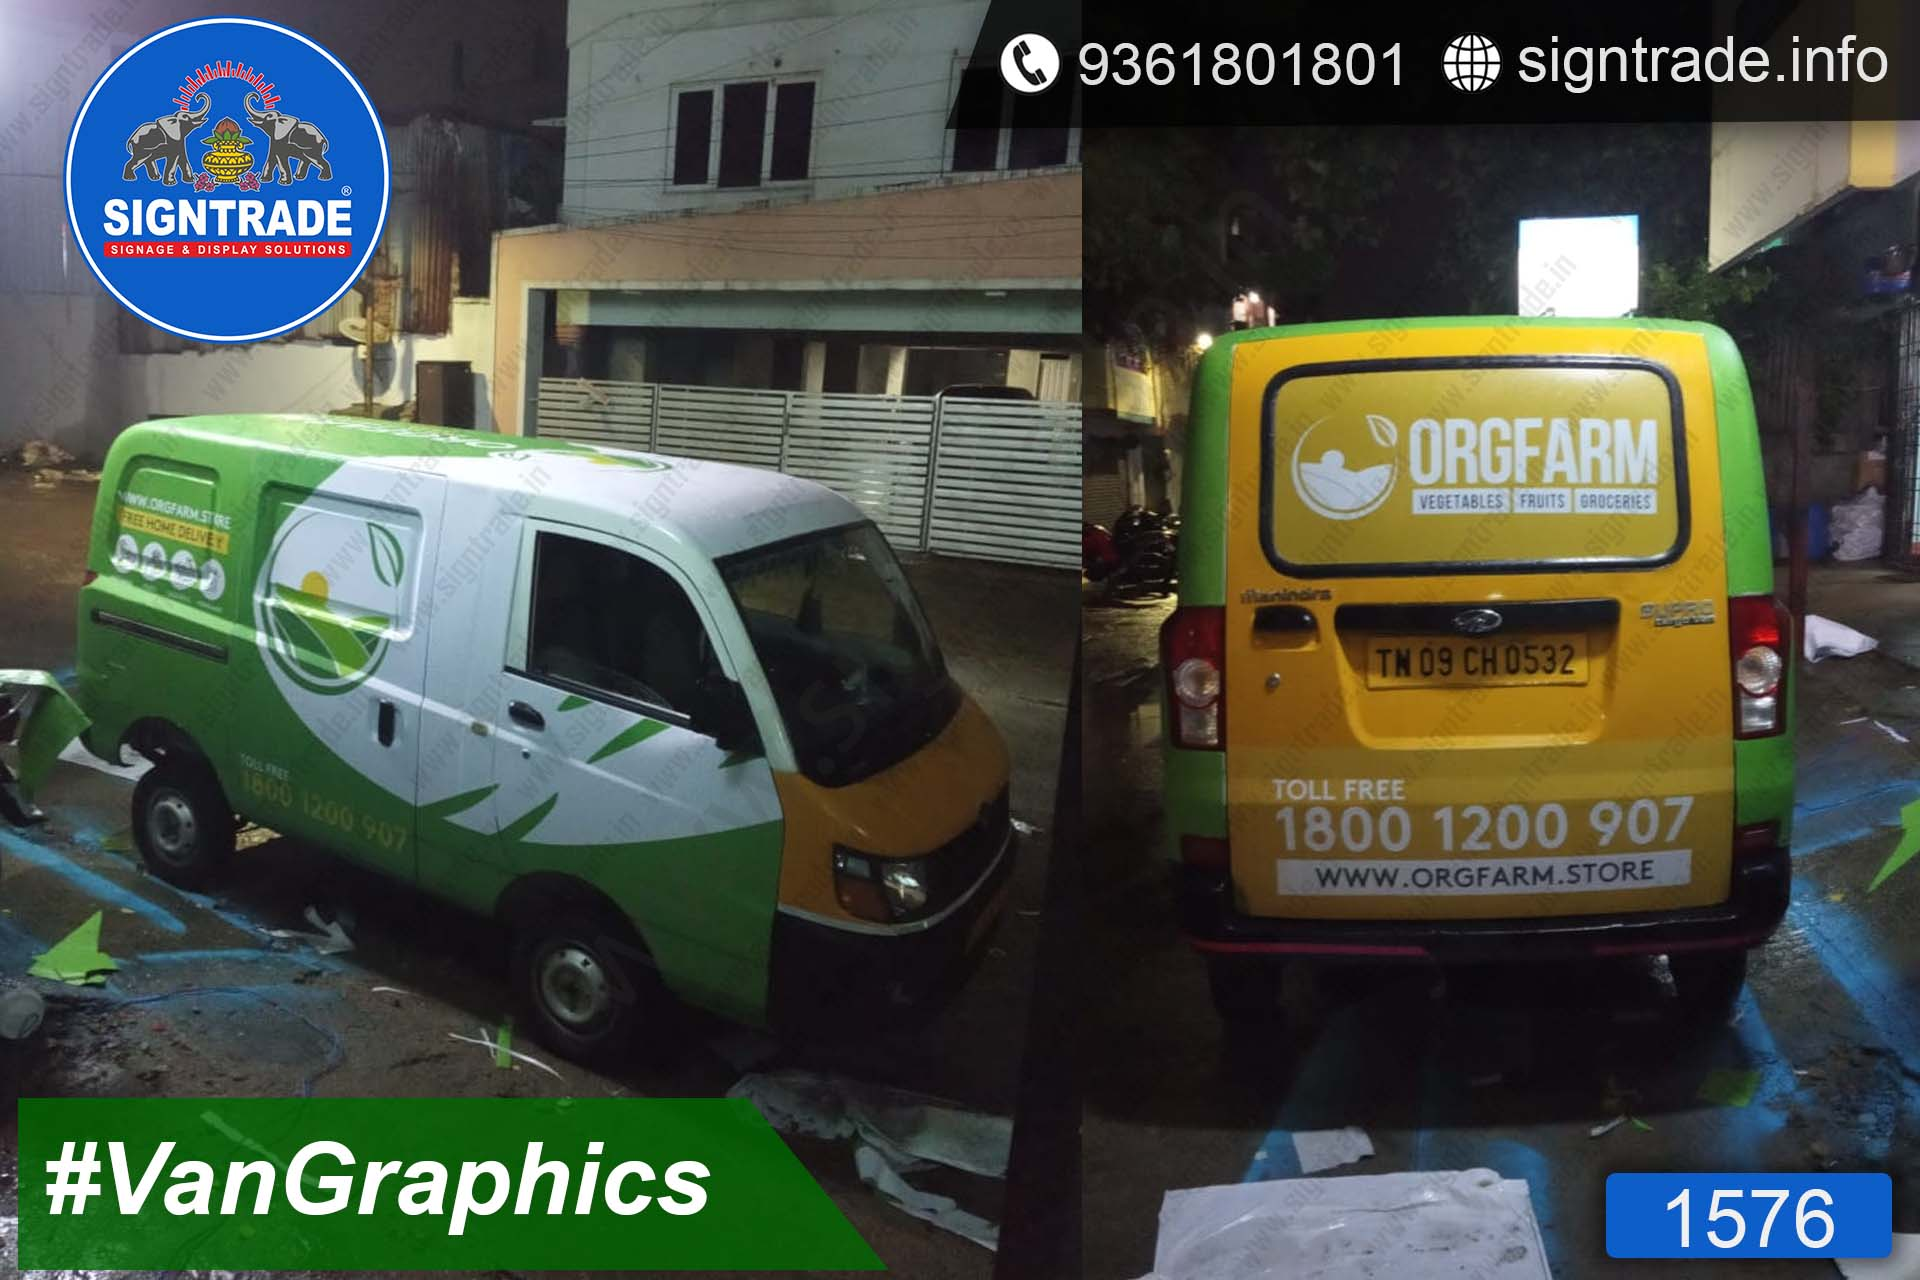 Orgfarm, Chennai - SIGNTRADE - Vinyl, Stickers, Van Graphics, Vehicle Graphics and Wraps Service Provider in Chennai